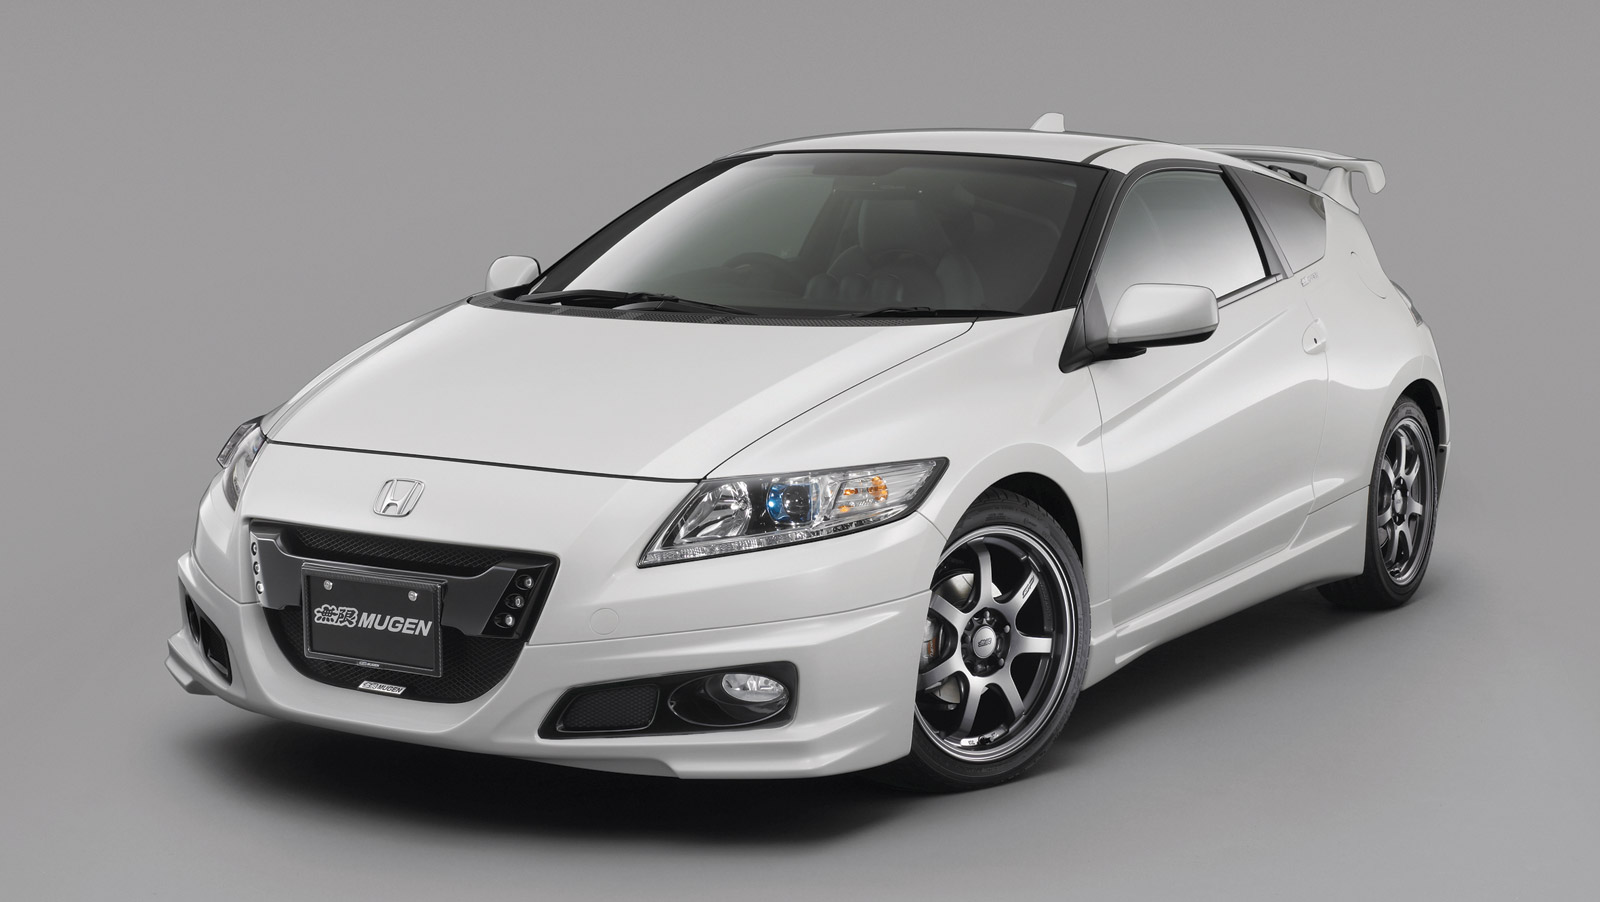 Mugen Enhanced Honda Cr Z Icf Goes On Sale In Uk